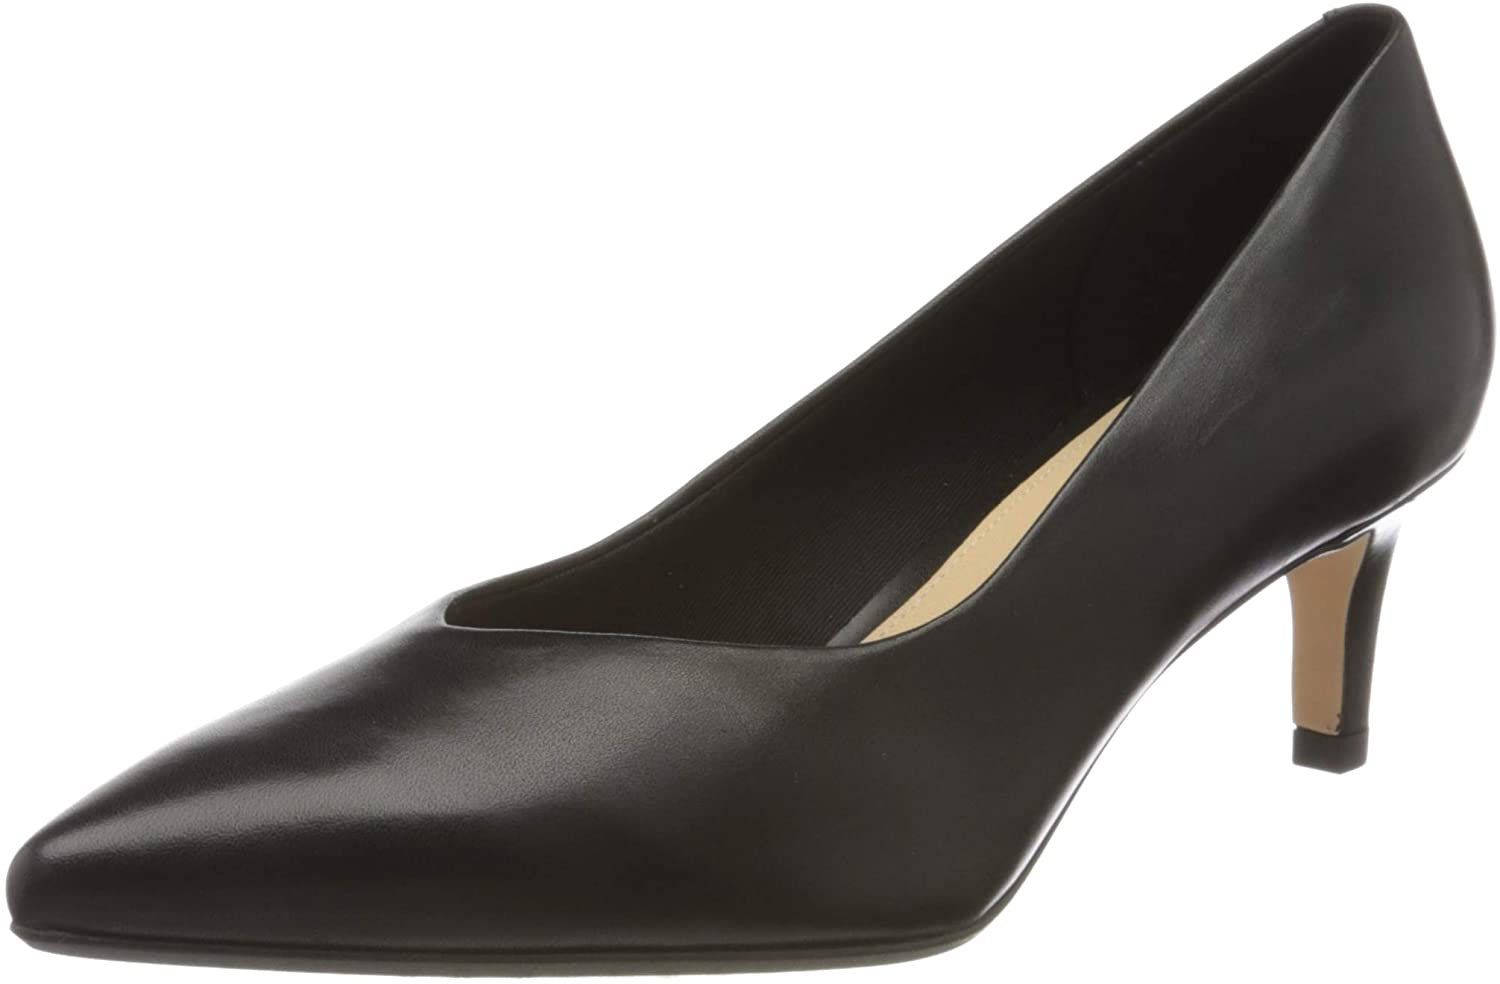 Clarks Laina55 Court Court Shoes Women Black Court Shoes Shoes